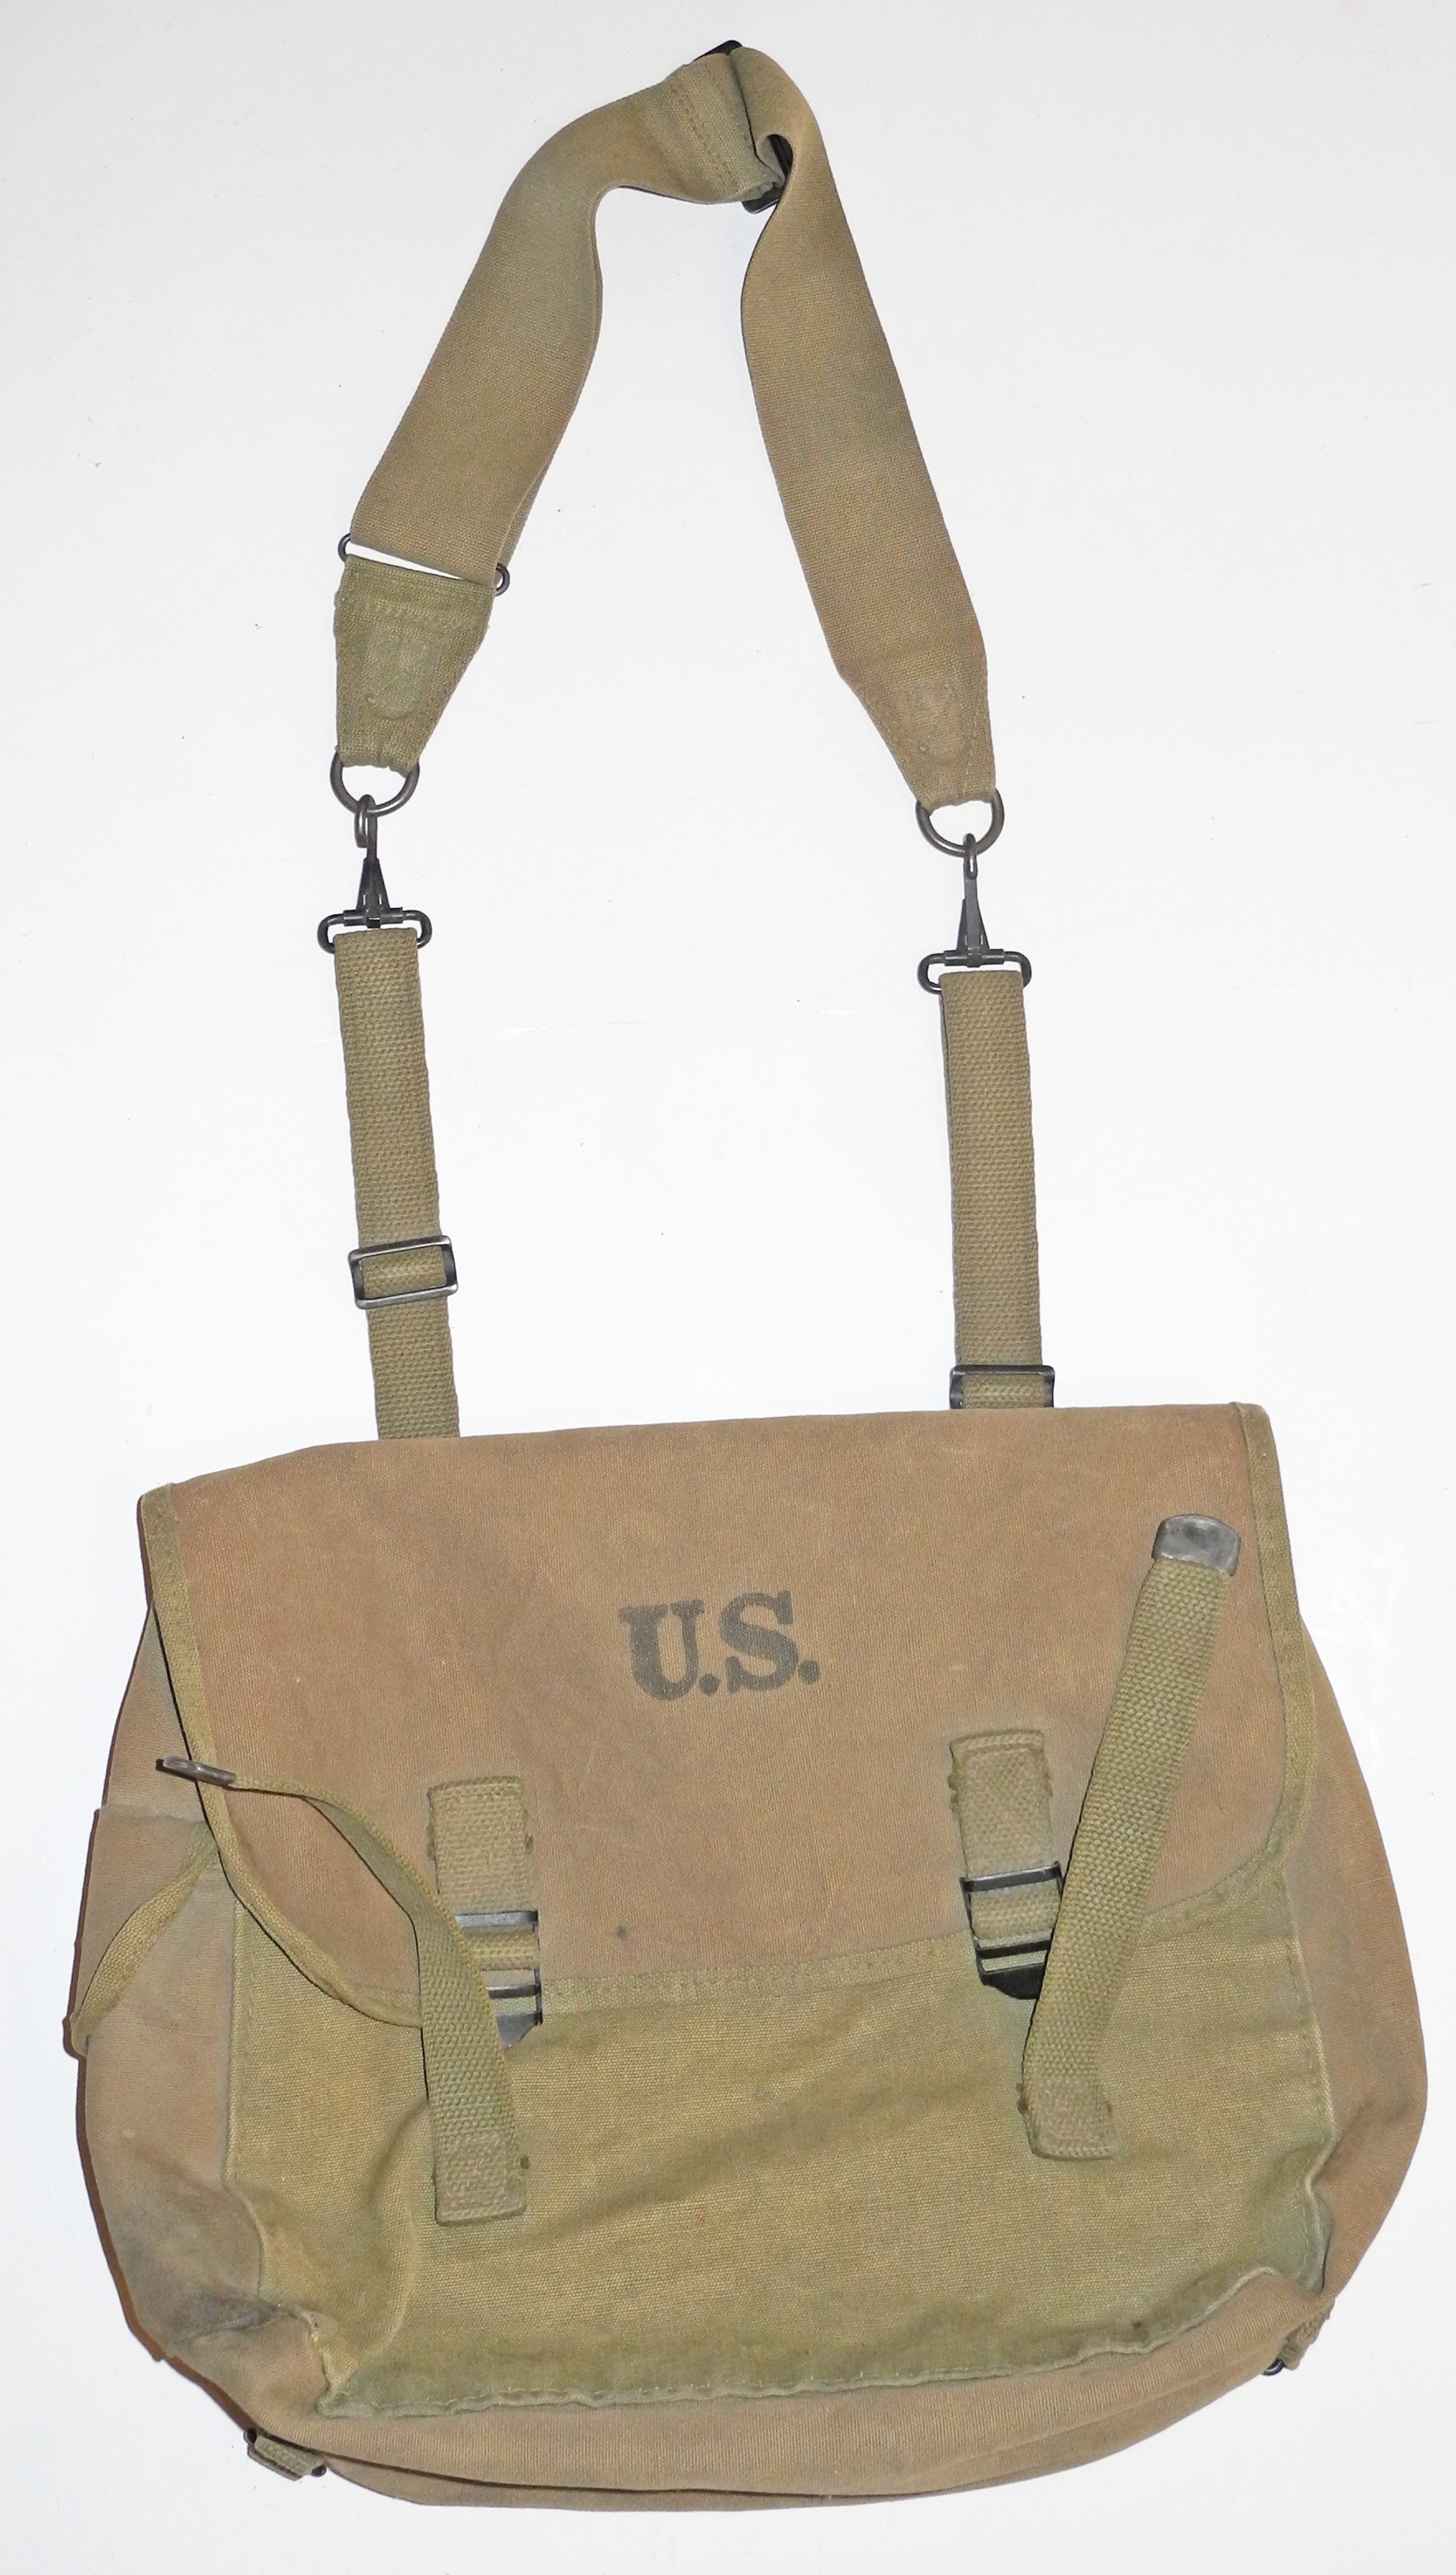 WWII US Army musette bag